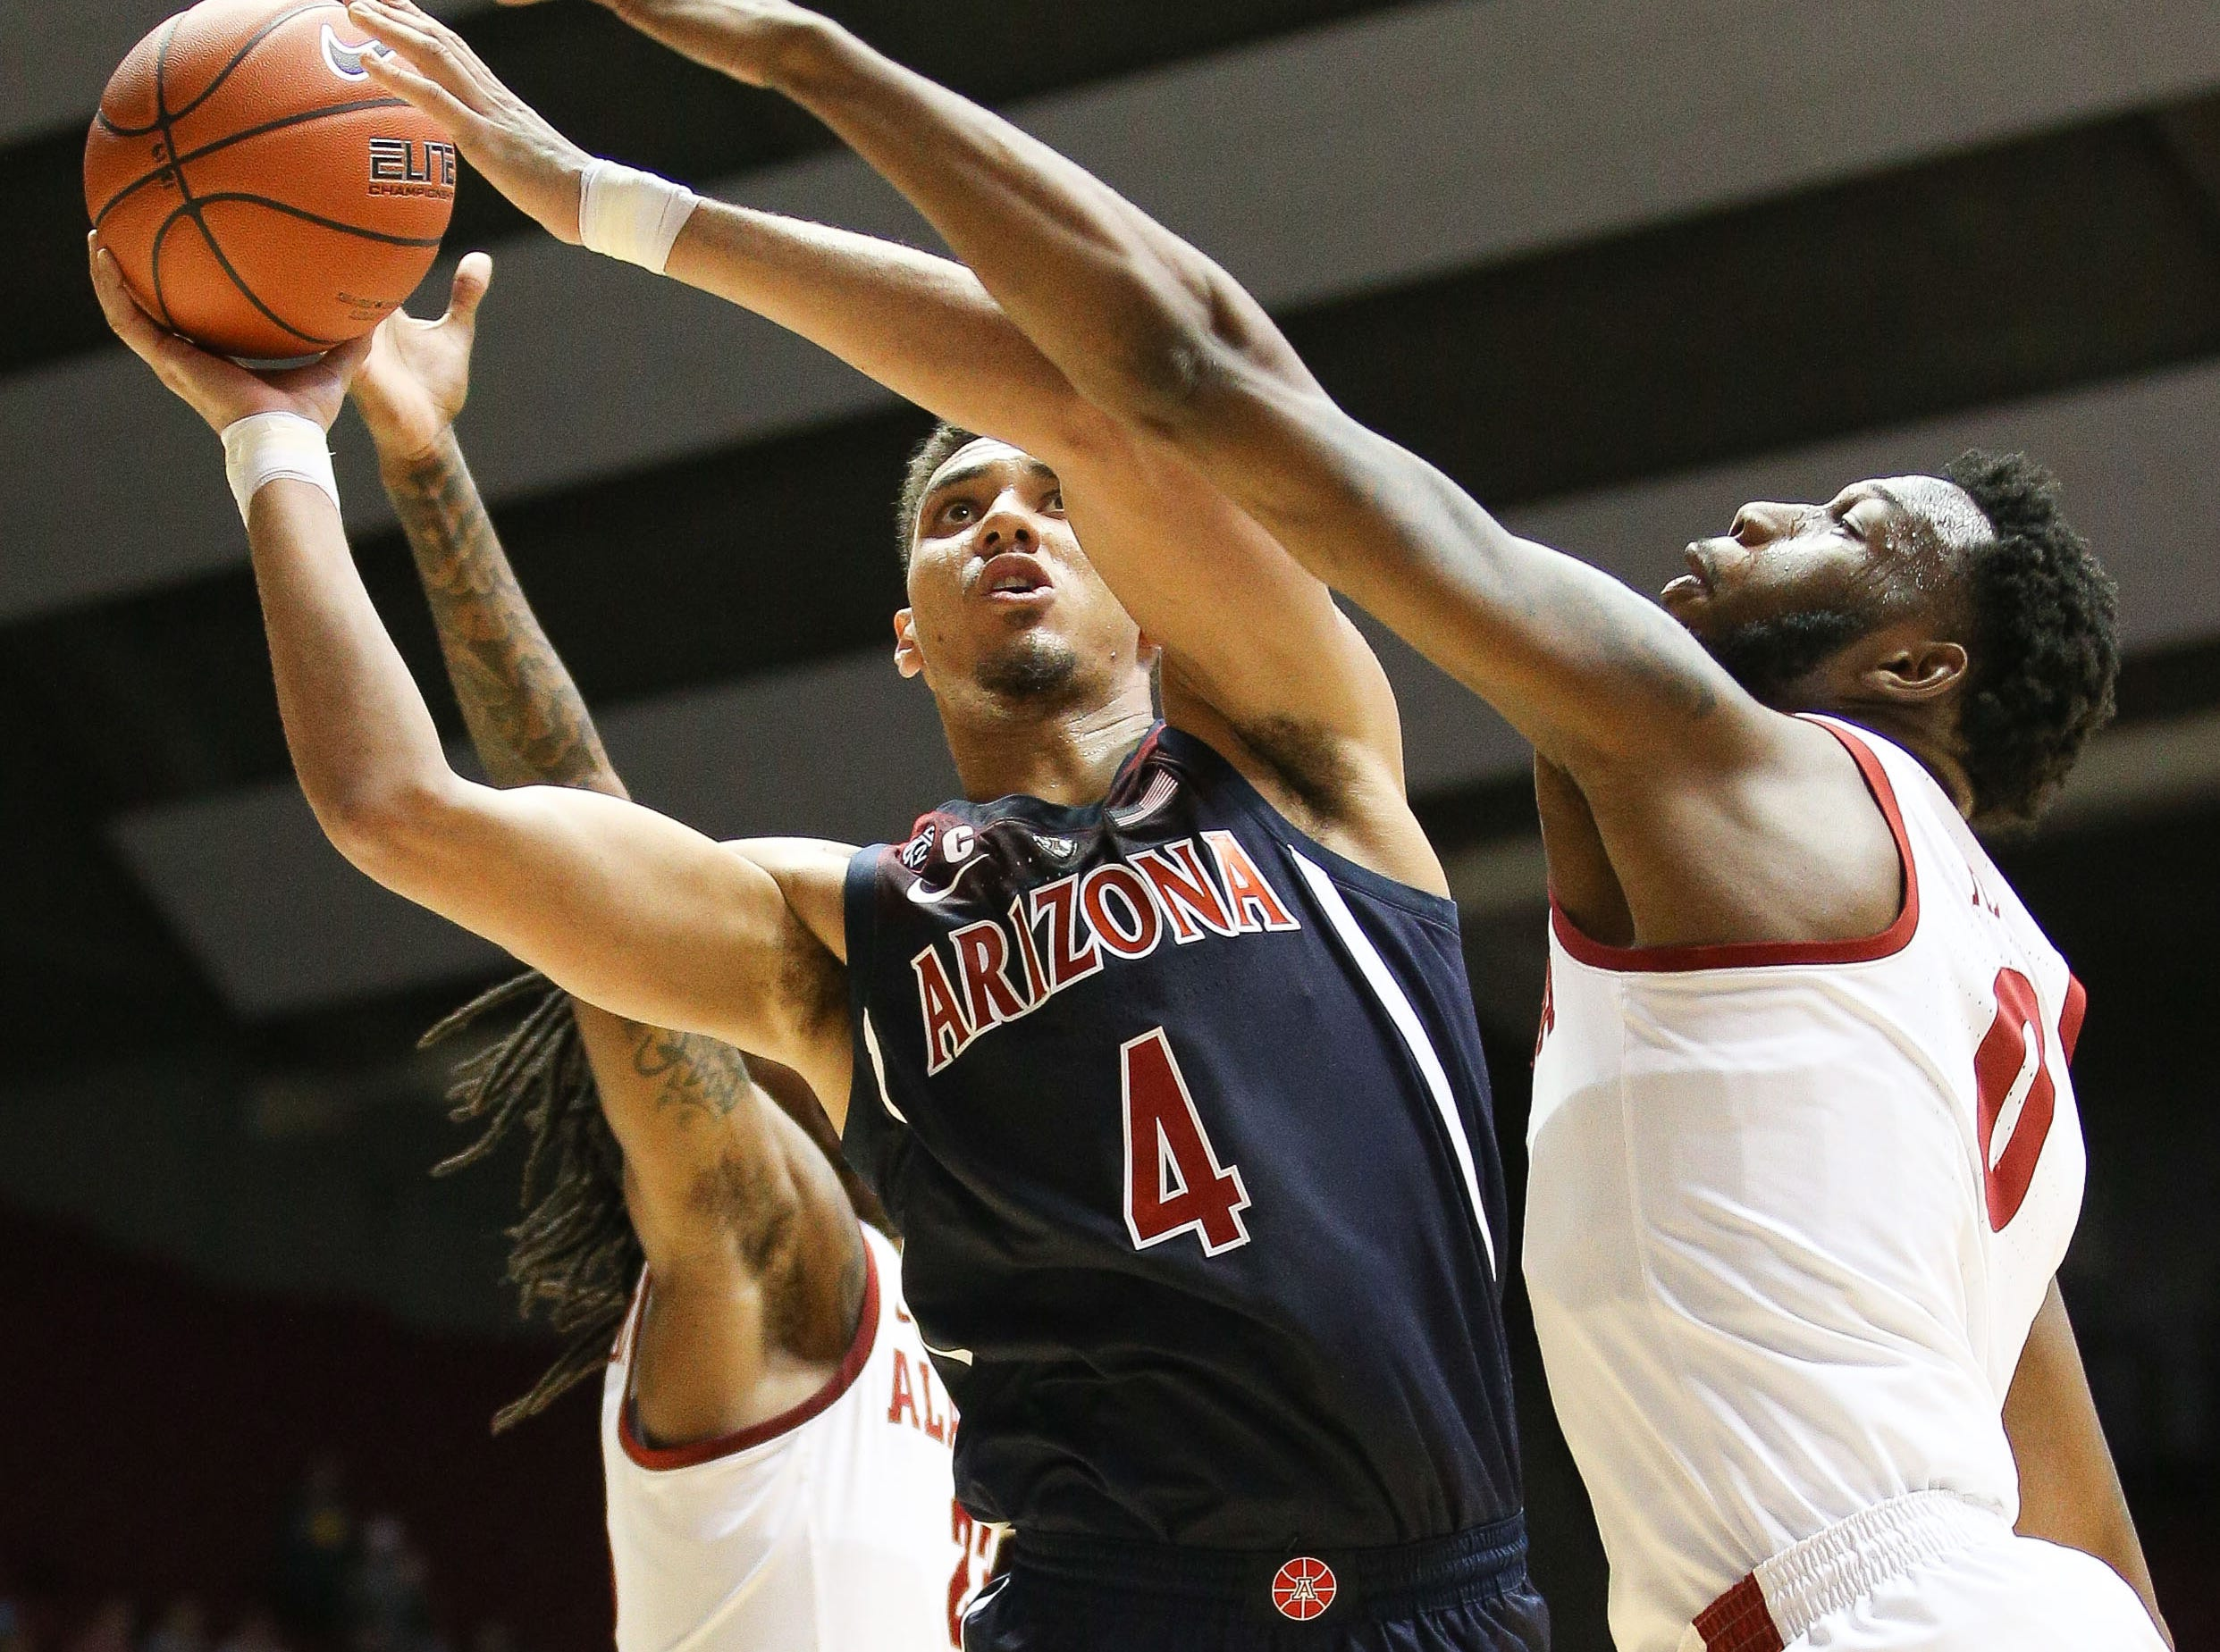 Dec 9, 2018; Tuscaloosa, AL, USA; Arizona Wildcats center Chase Jeter (4) shoots against Alabama Crimson Tide forward Donta Hall (0) during the first half at Coleman Coliseum. Mandatory Credit: Marvin Gentry-USA TODAY Sports